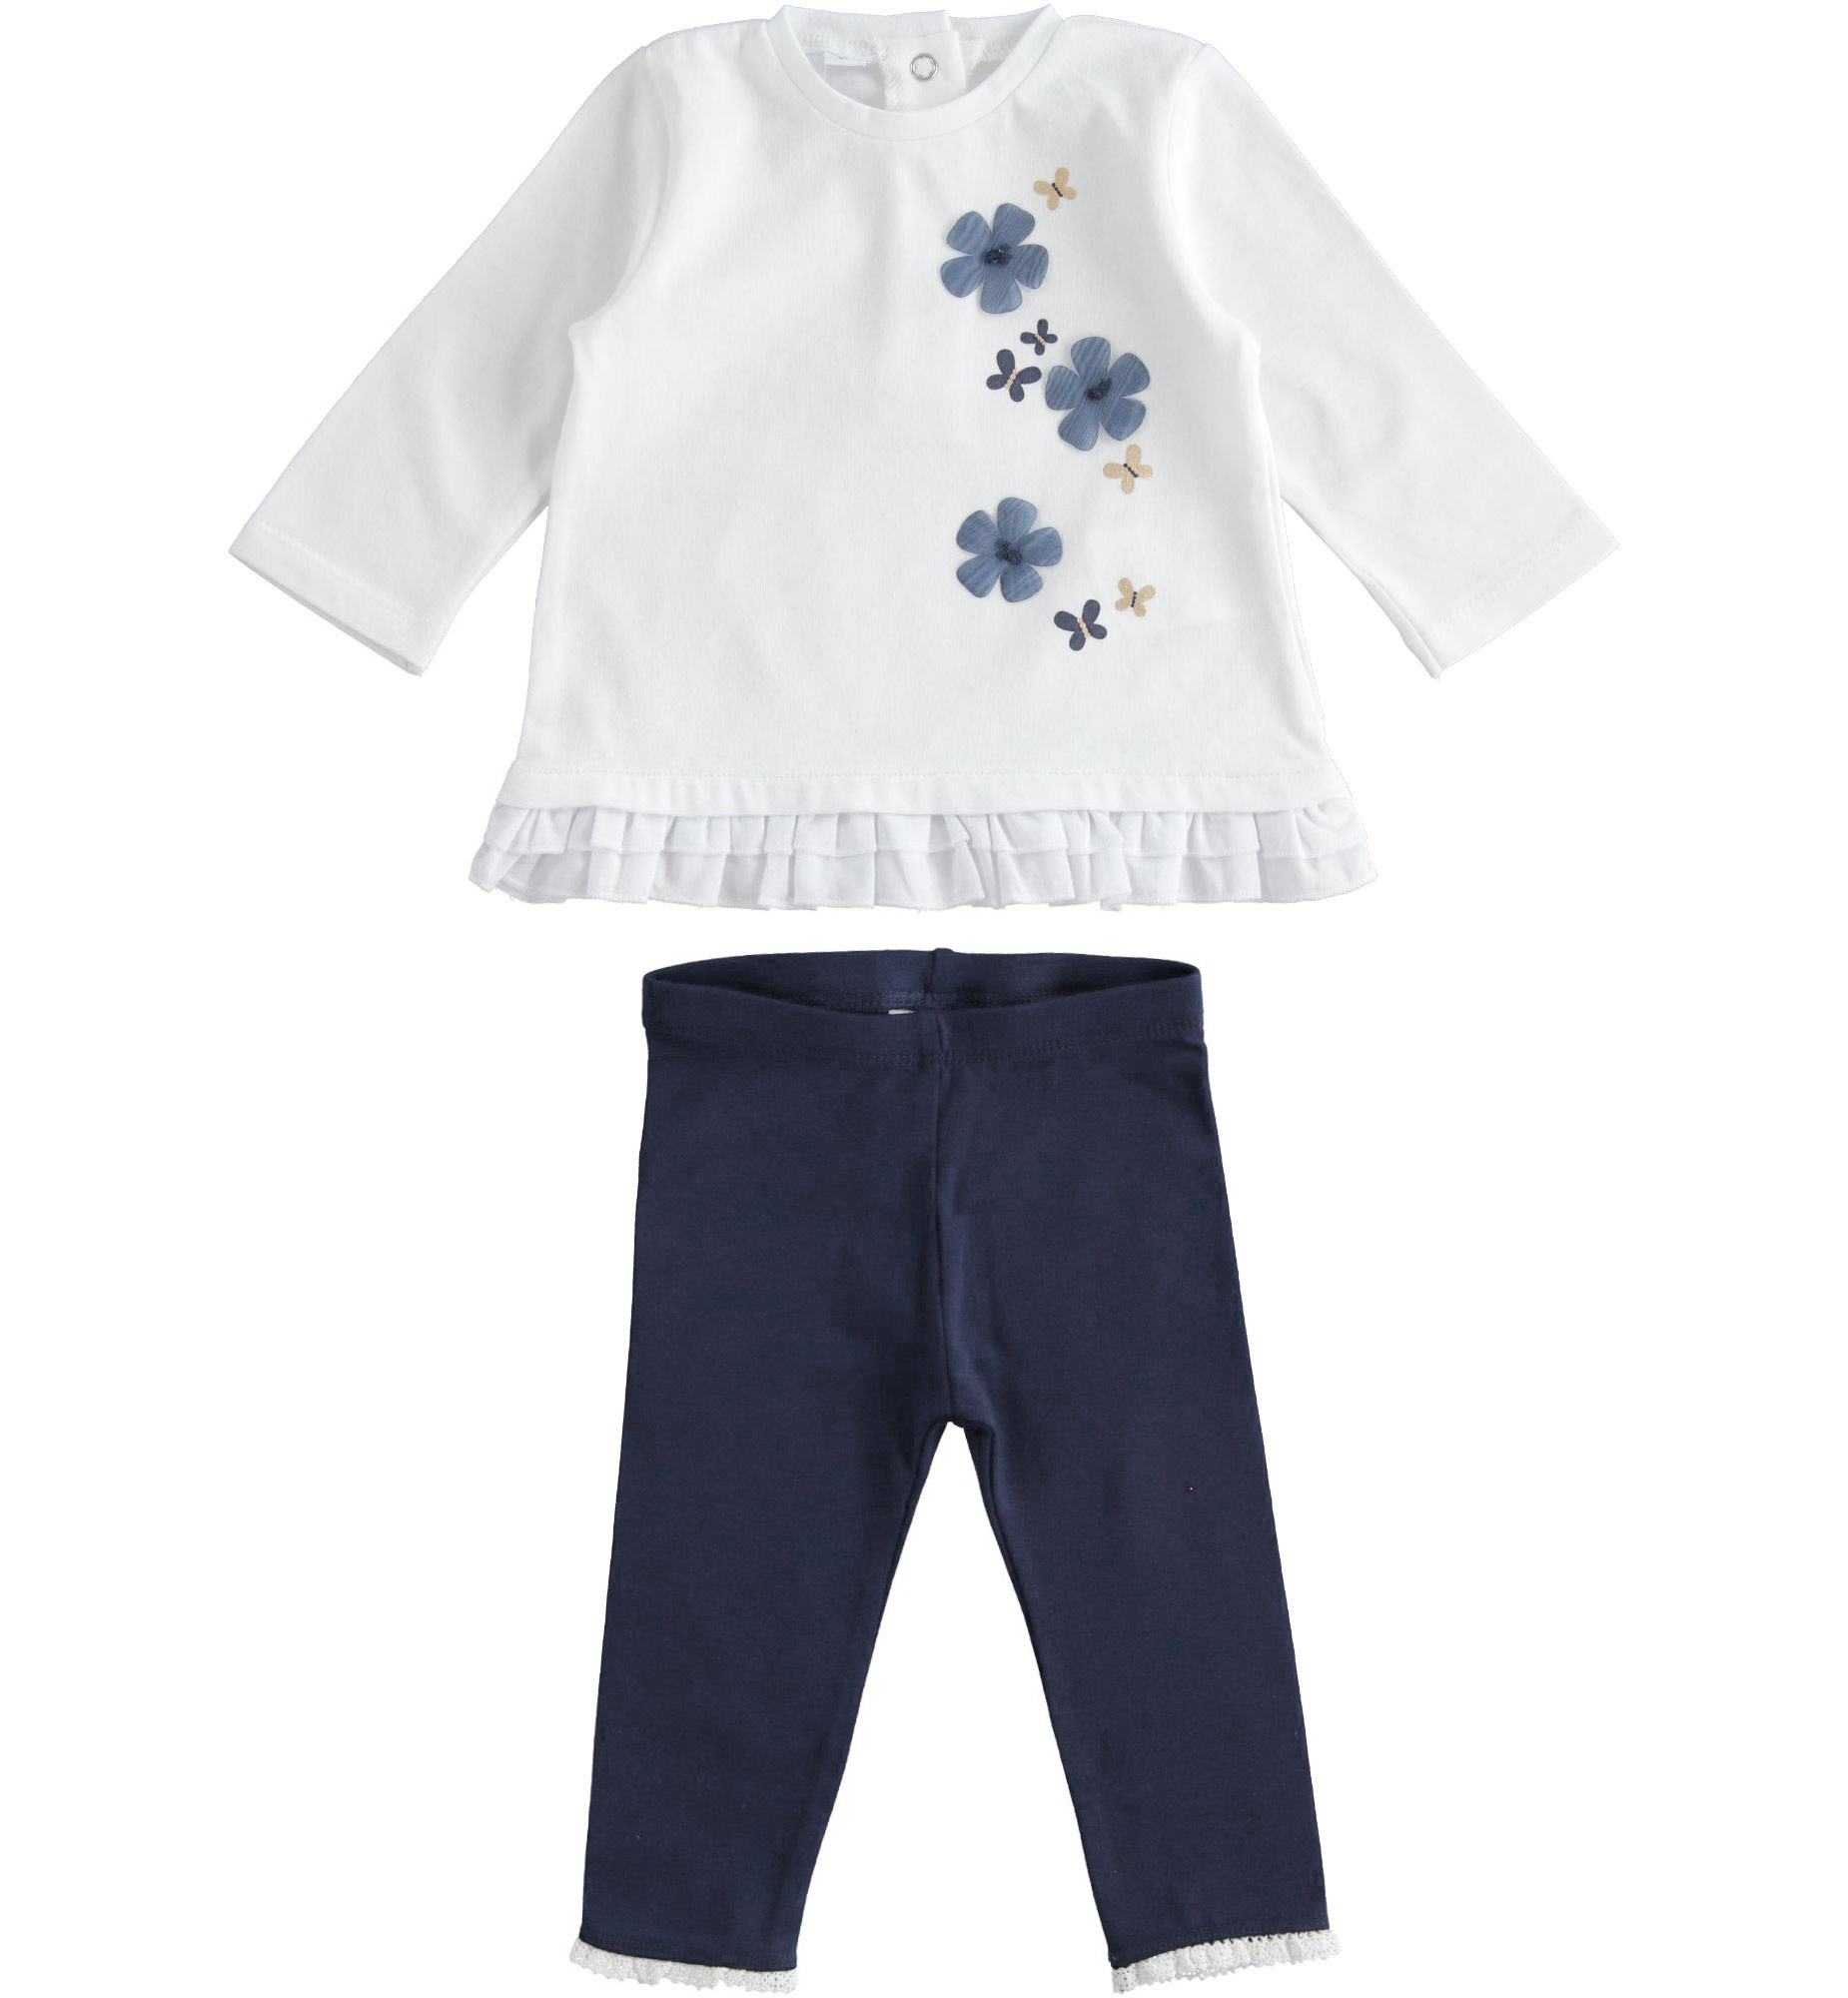 iDo iDo SS20 girls navy flower leggings set J145